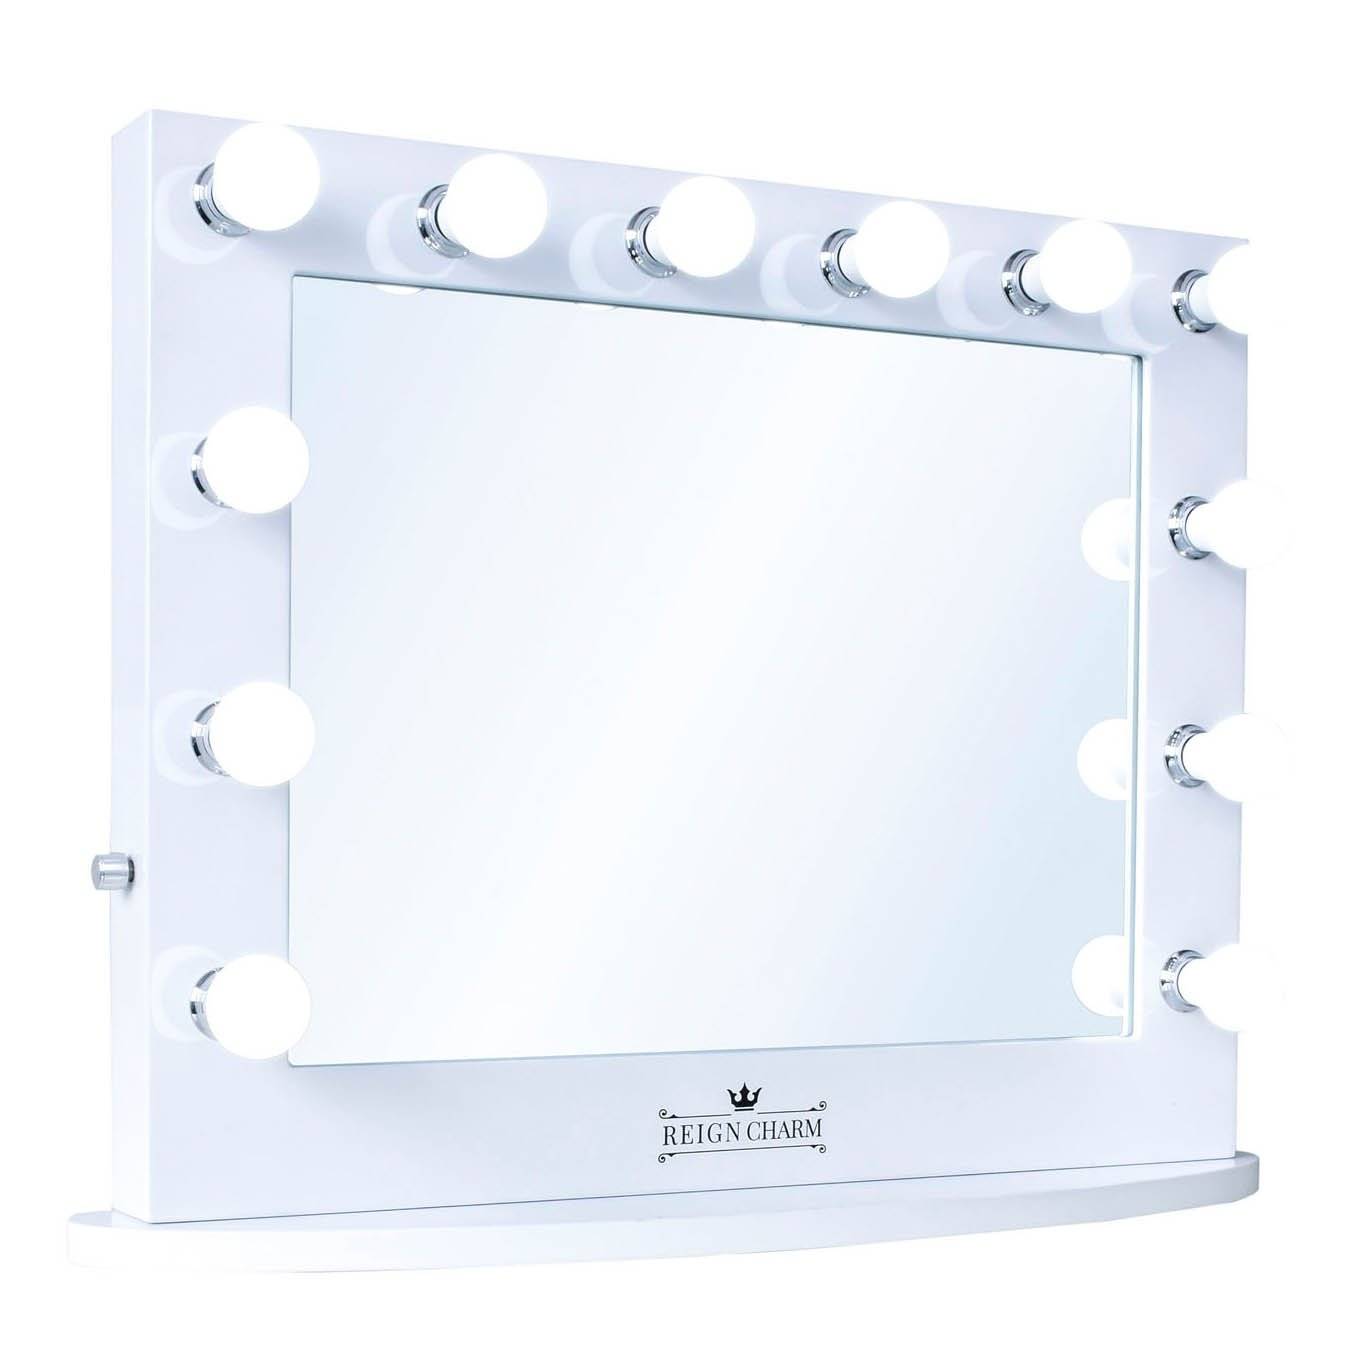 ReignCharm Hollywood Vanity Mirror, LED Light Bulbs, USB Ports and Outlets, 32 L X 27 H, White, 12 Piece